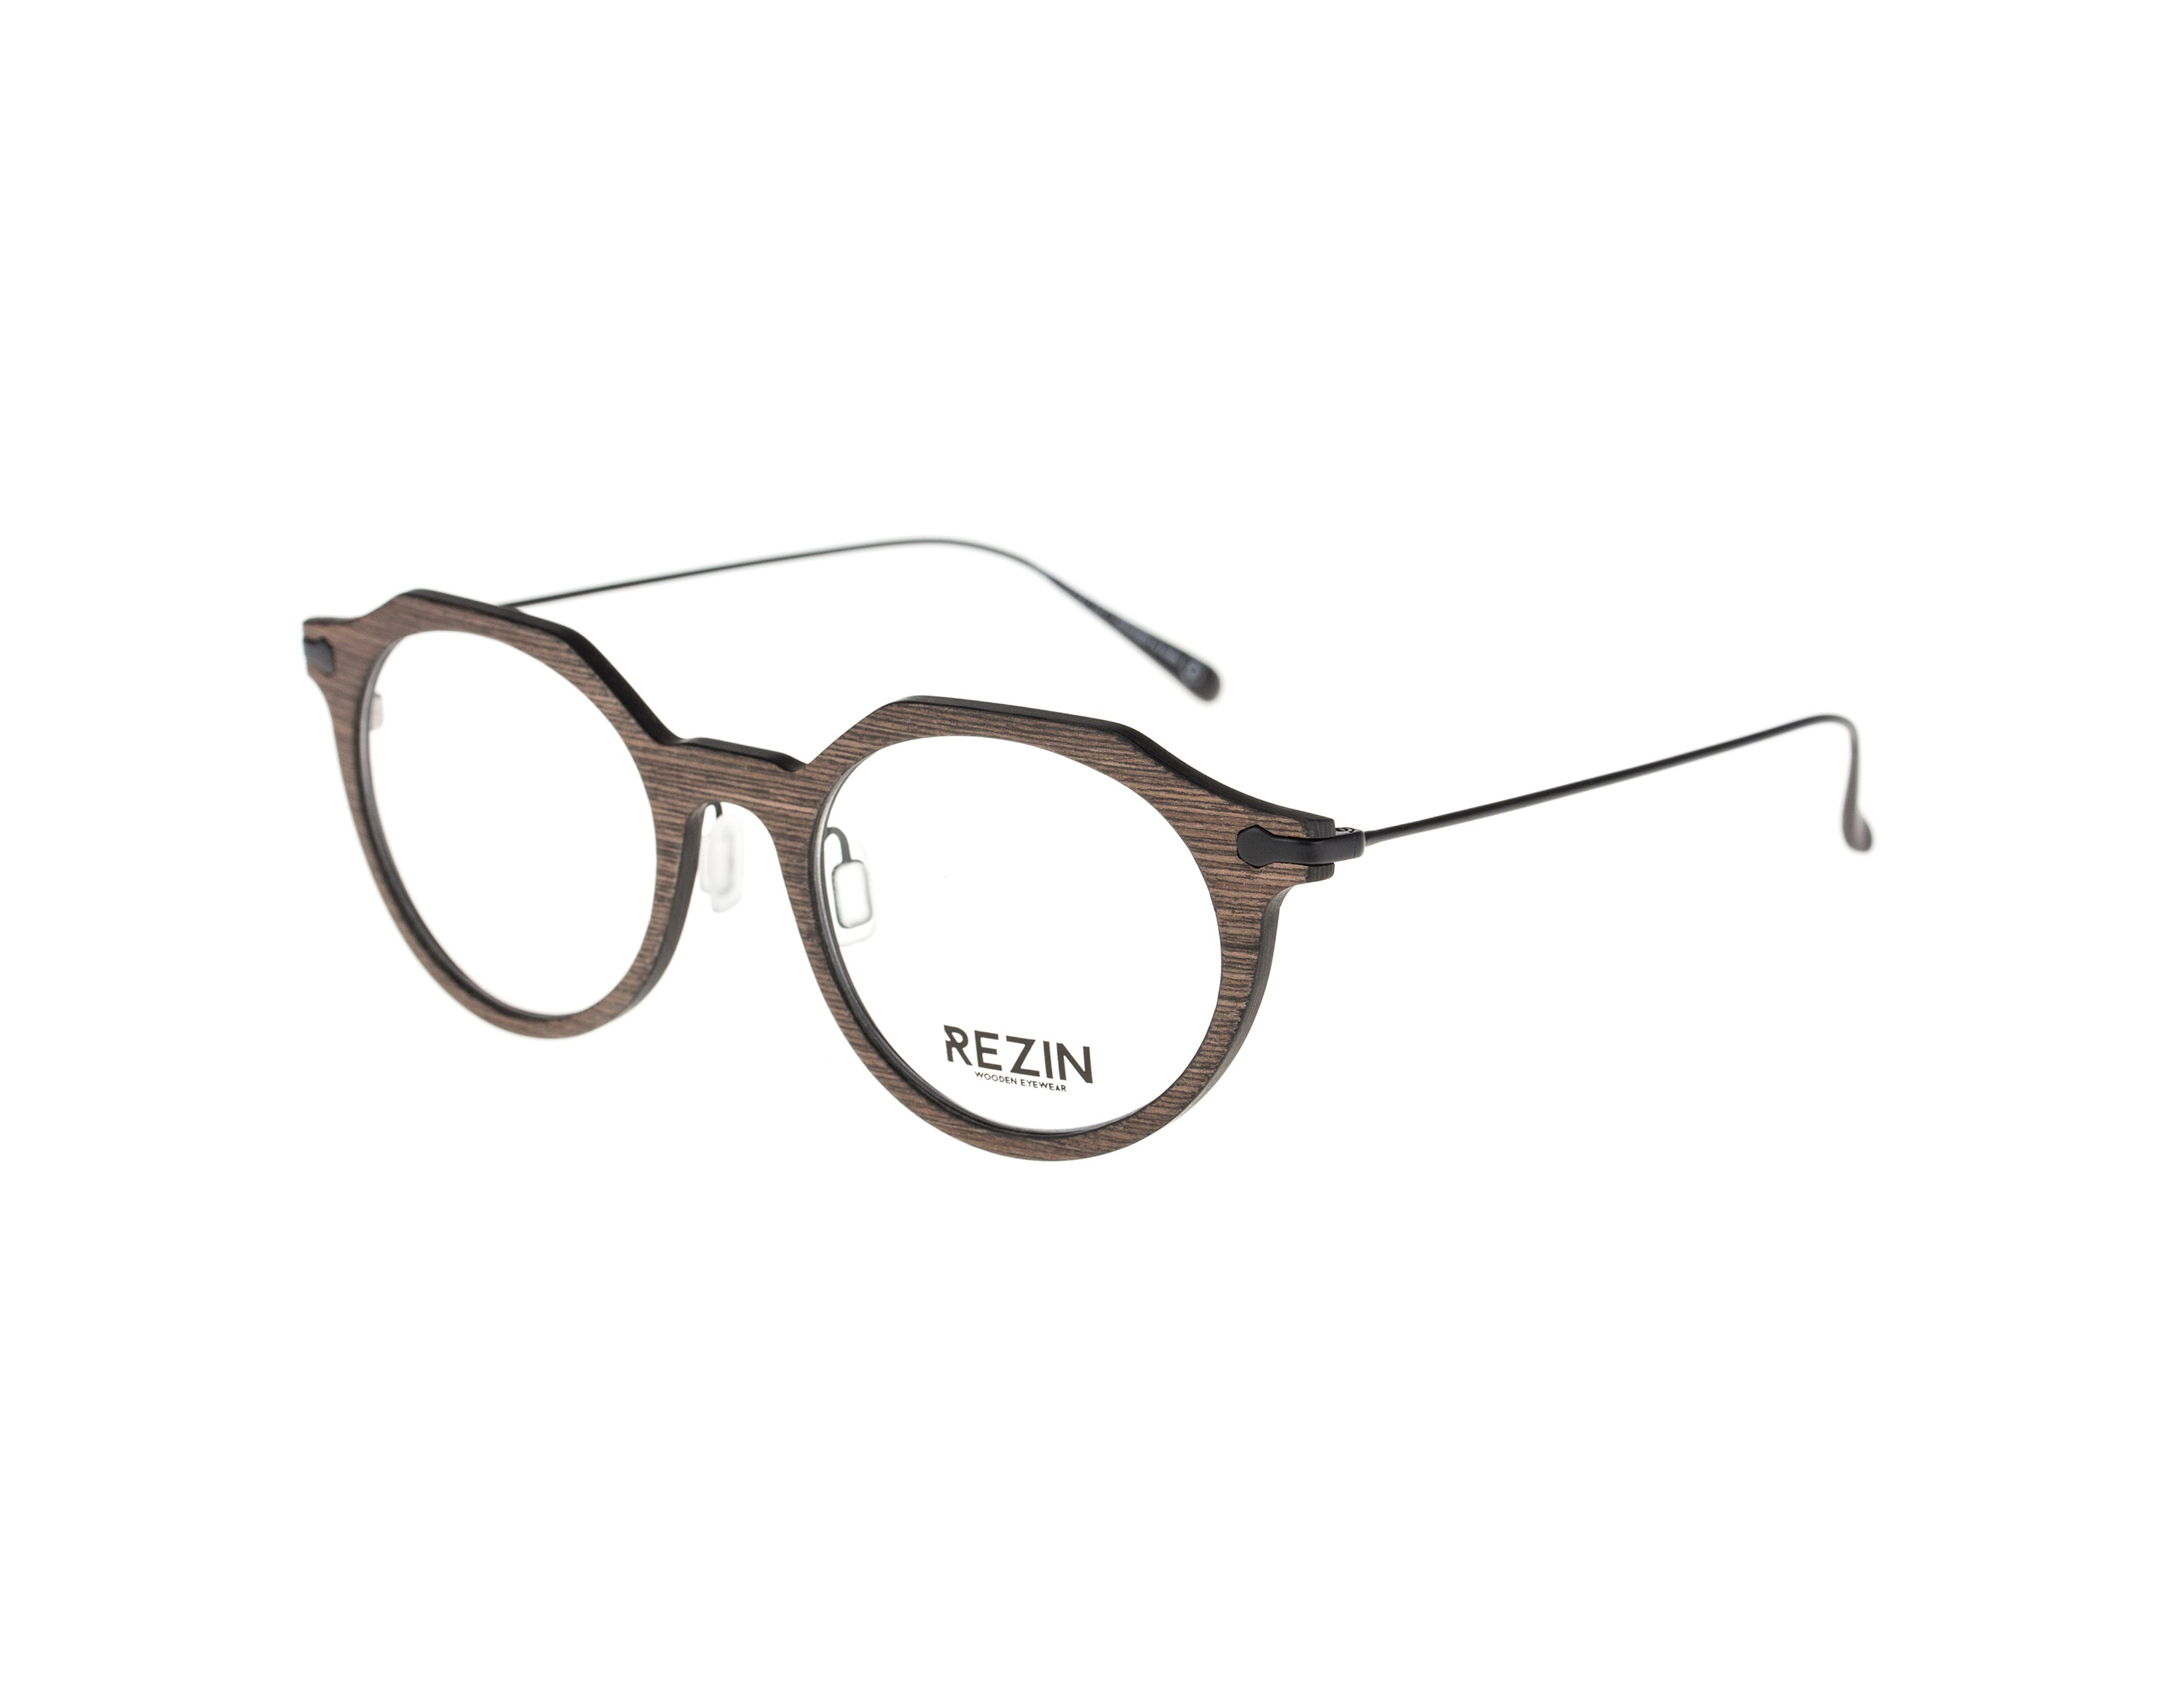 LOC004N DOC Noyer/Carbone Optique